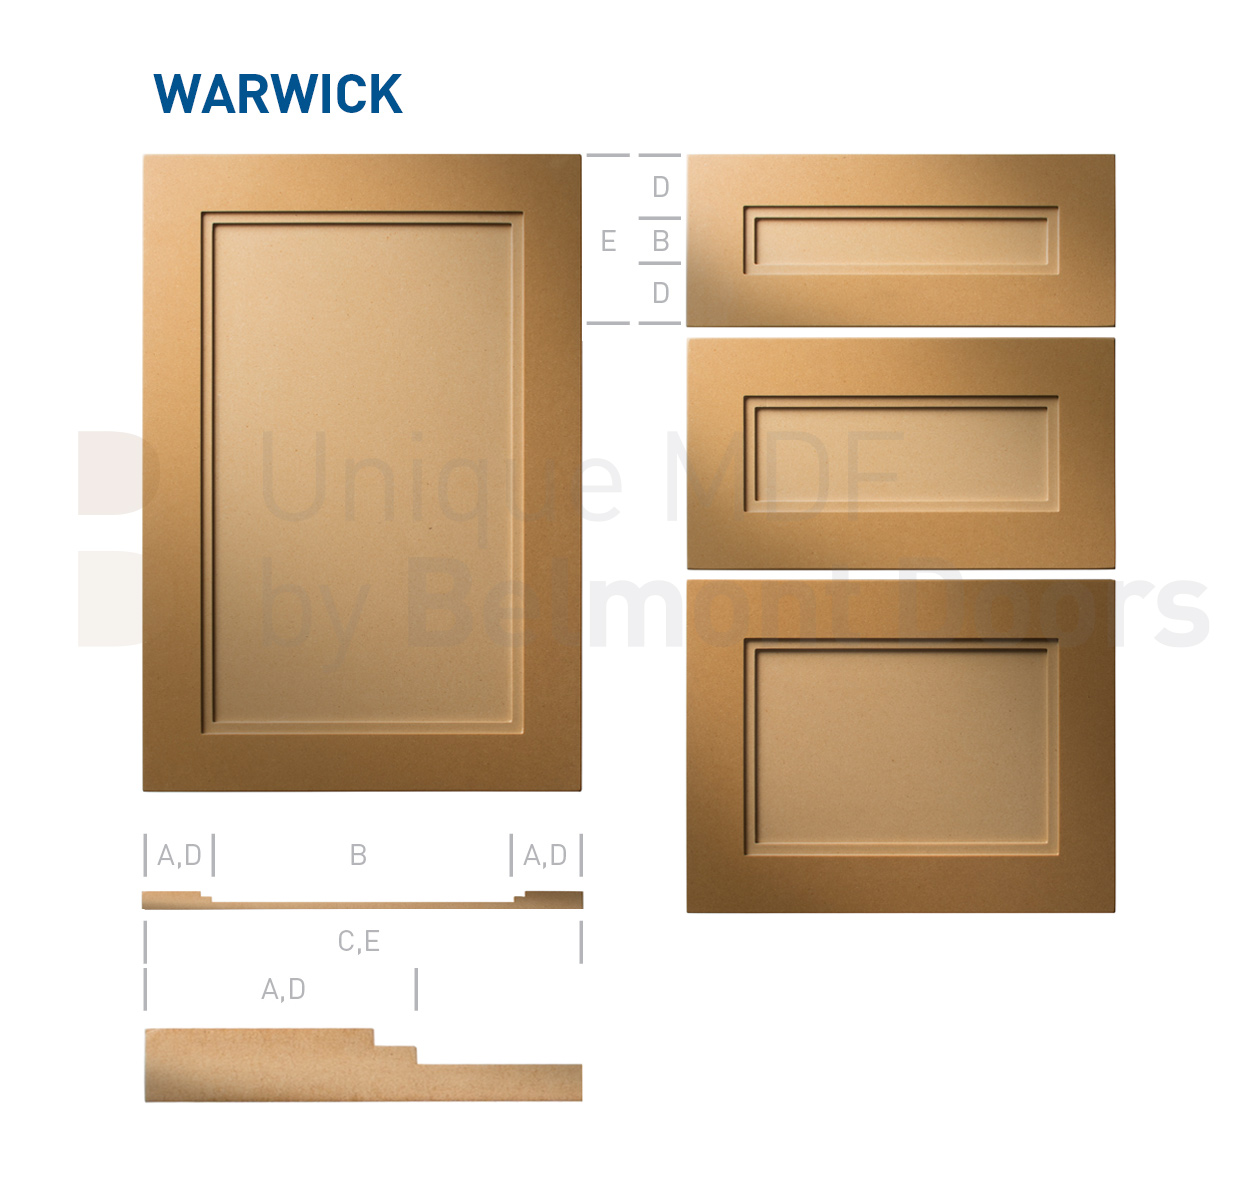 Warwick-Shaker-MDF-Doors-Flat Panel Kitchen Cabinet Doors Drawers by BelmontDoors.com